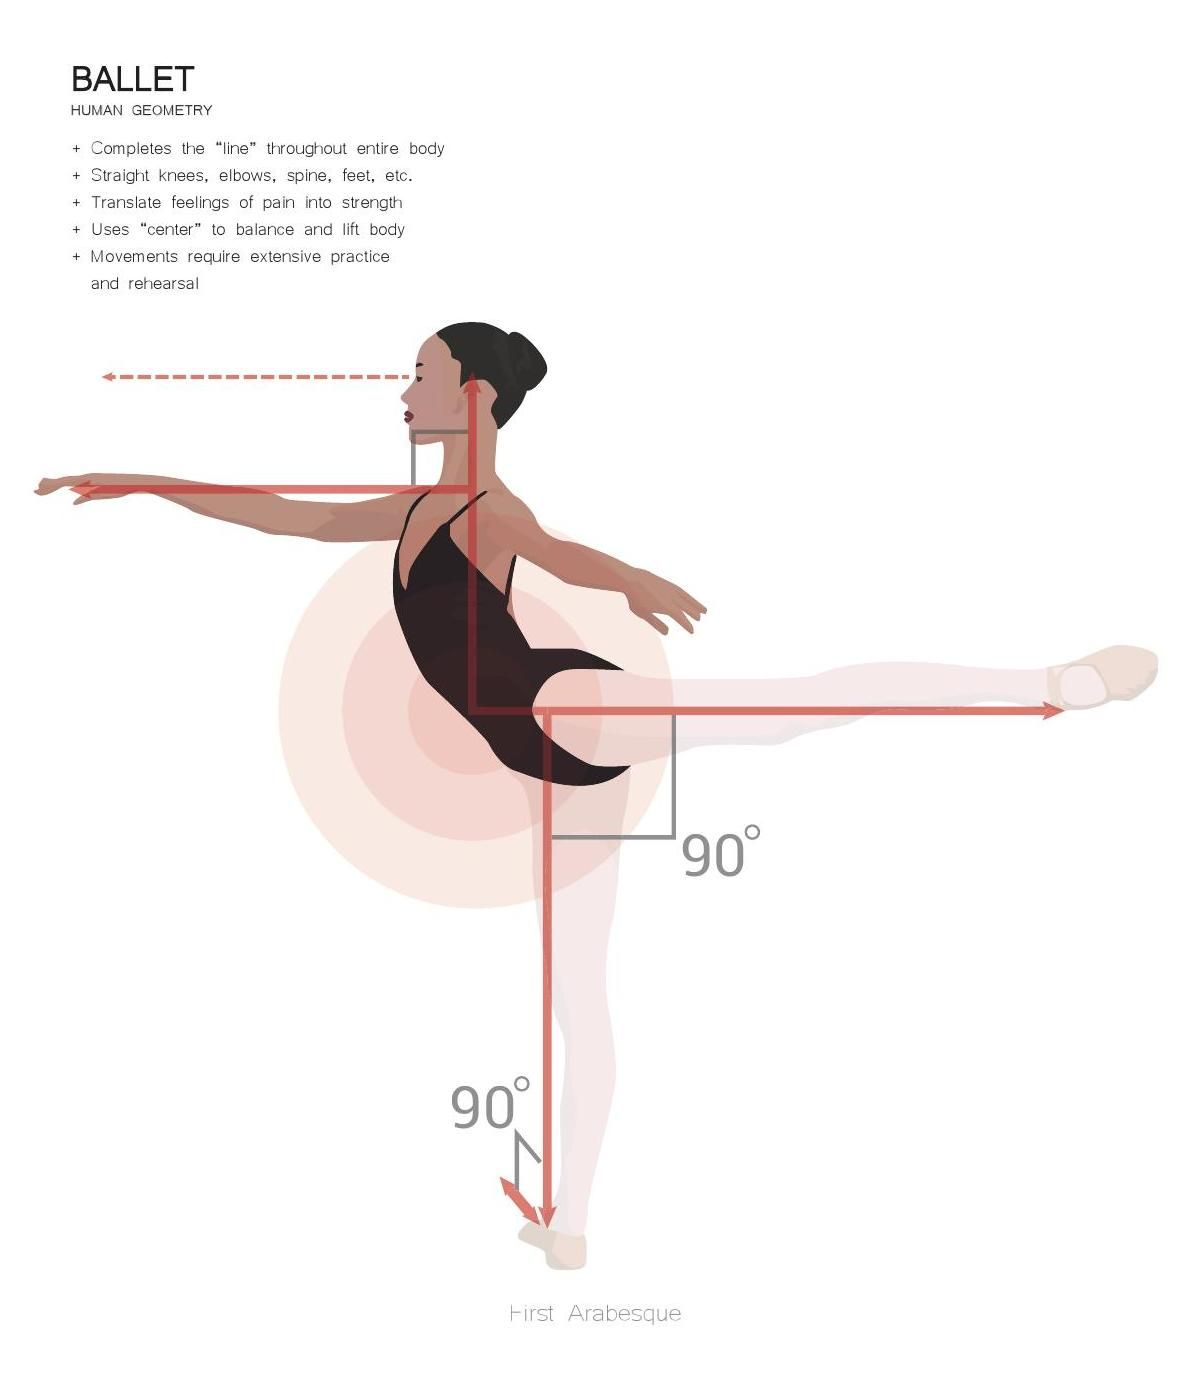 Dissertations - Dance - Research Guides at University of Oregon Libraries